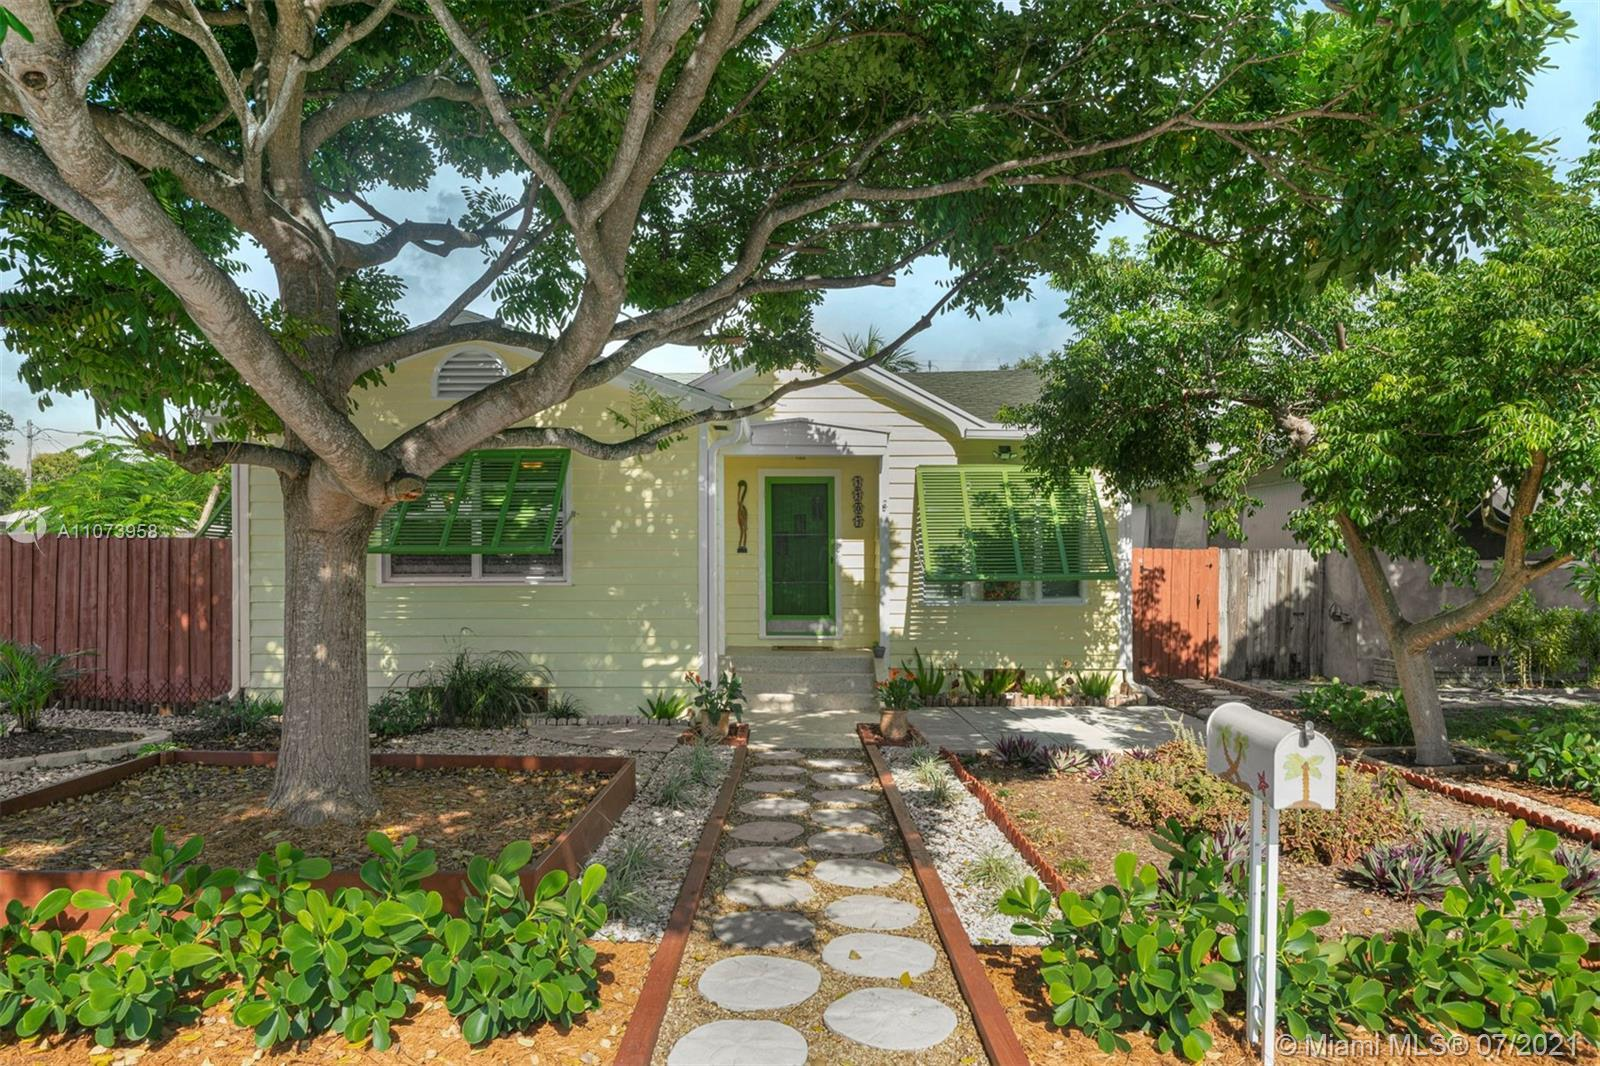 Superb 3BD/2BA plus Florida room home in Lake Worth! At first glance, you will notice its welcoming